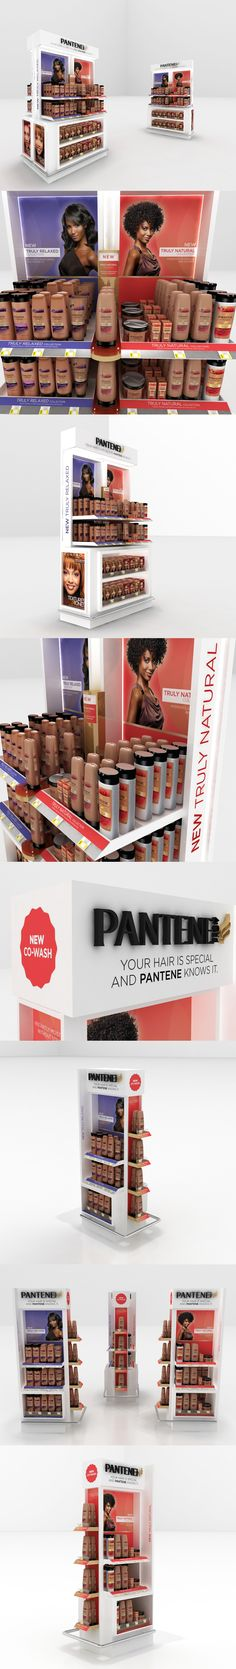 New Pantene Collection Exhibition. Caribbean market: Montego Bay, Jamaica, Bahamas, Trinidad, St. Marteen, Curacao, Barbados, Aruba.